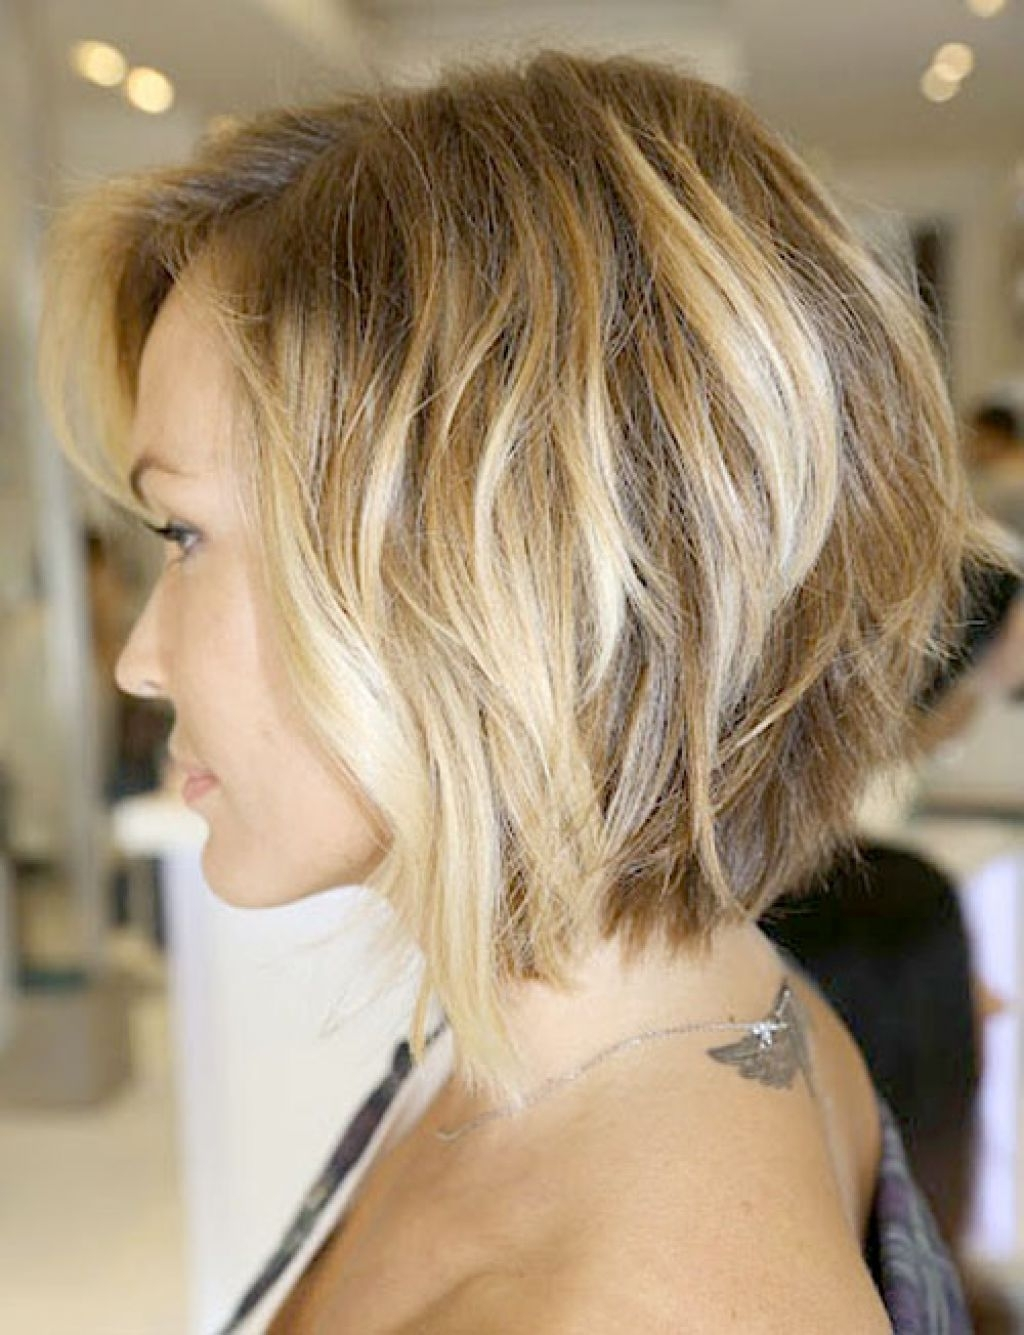 Short Inverted Bob Hairstyles For Wavy Hair – Popular Long Within Fashionable Shaggy Bob Cut Hairstyles (View 11 of 15)